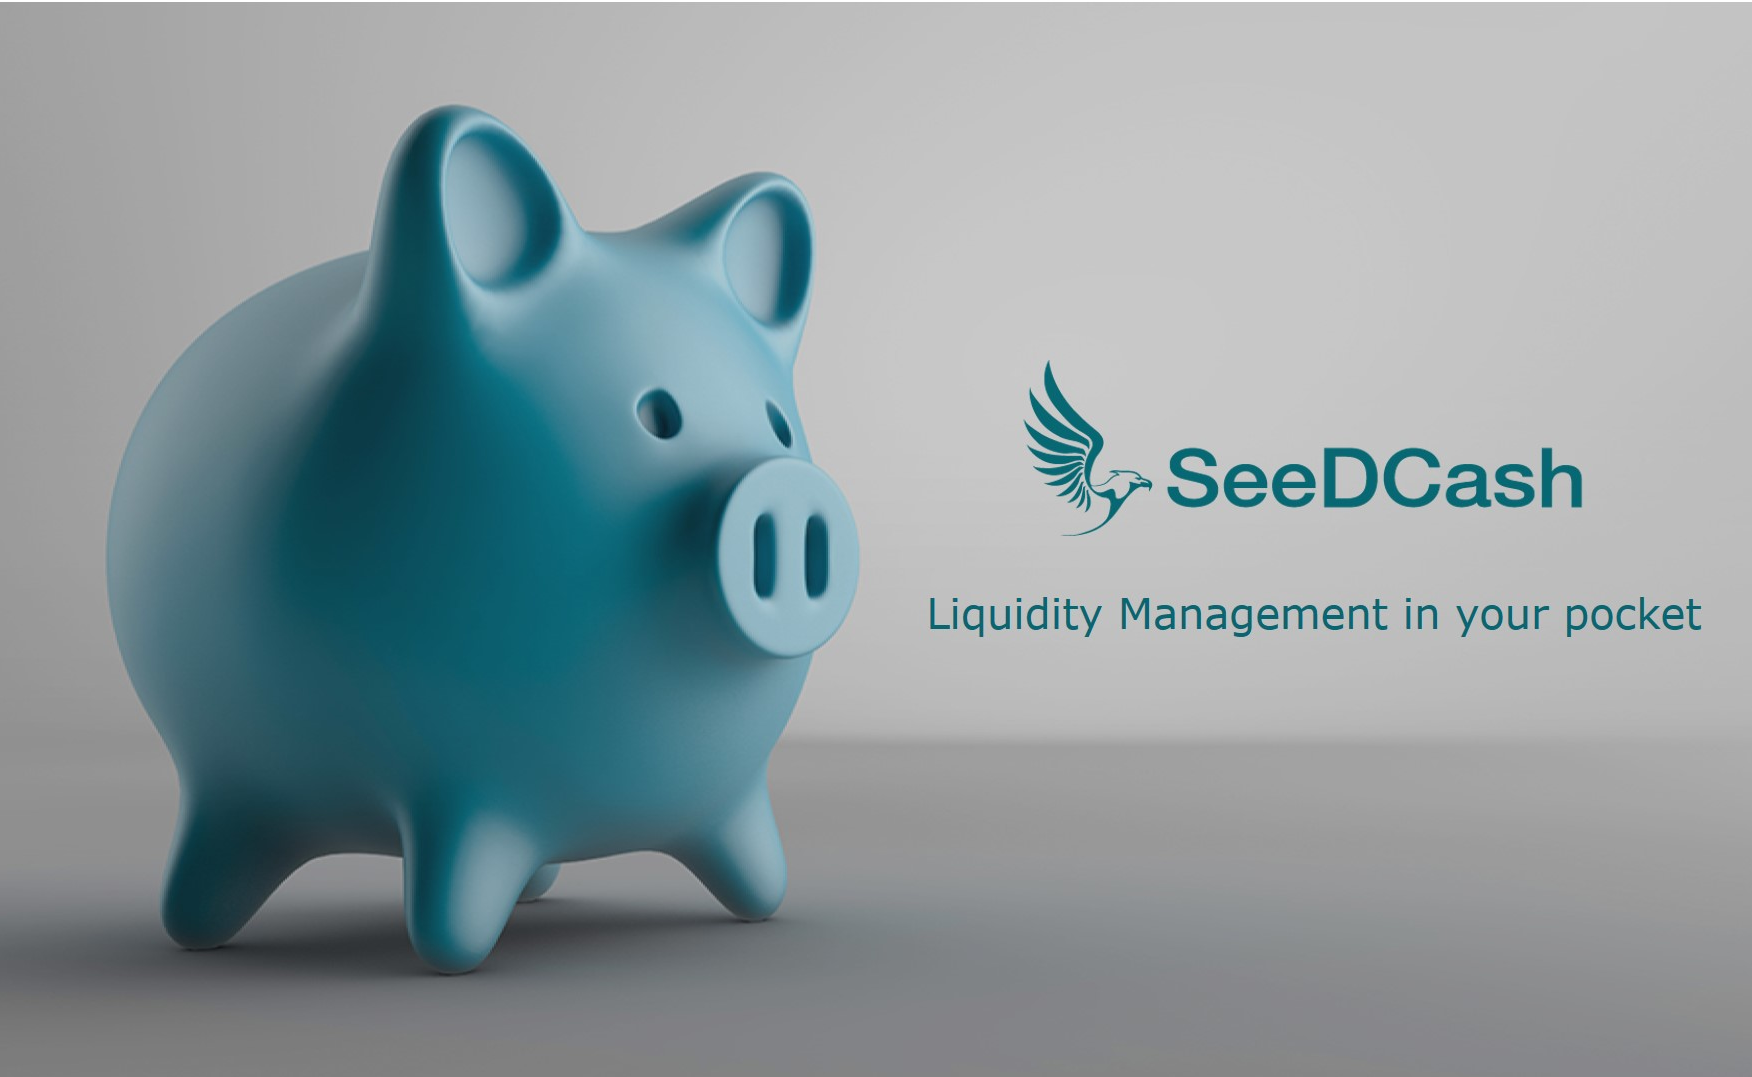 SeeDCash